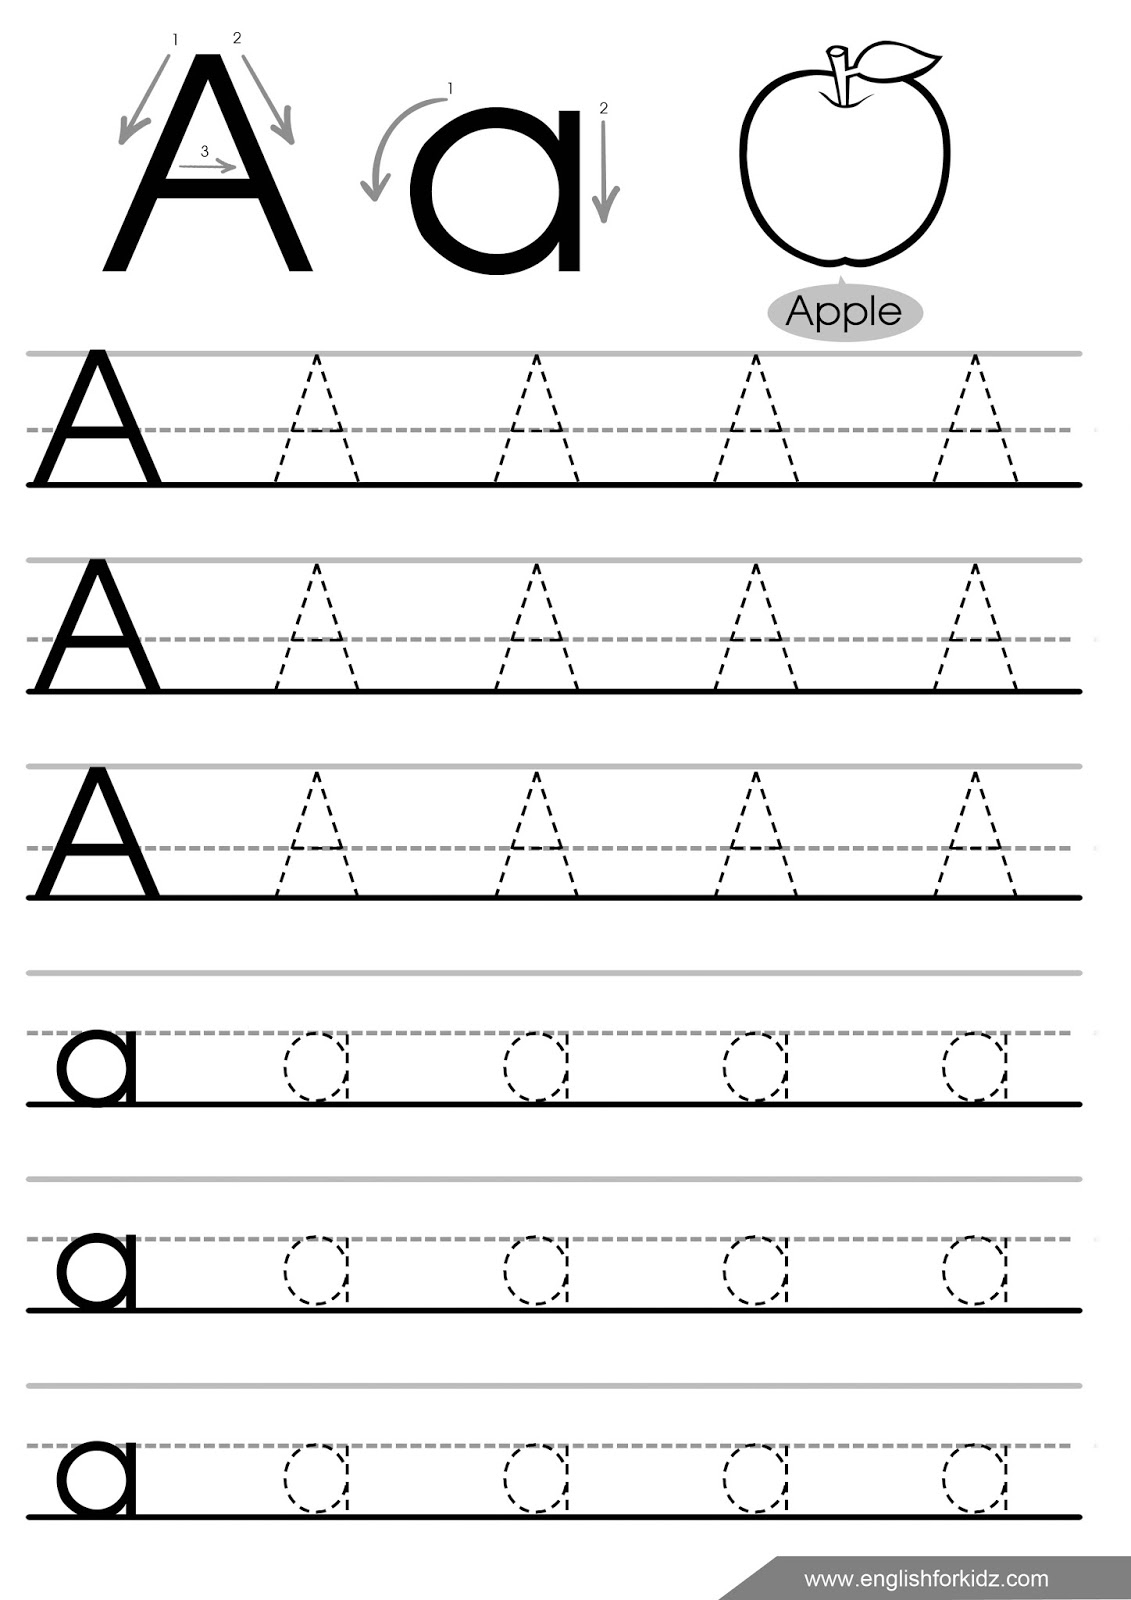 Letter Tracing Worksheets (Letters A - J) for Alphabet Tracing Template